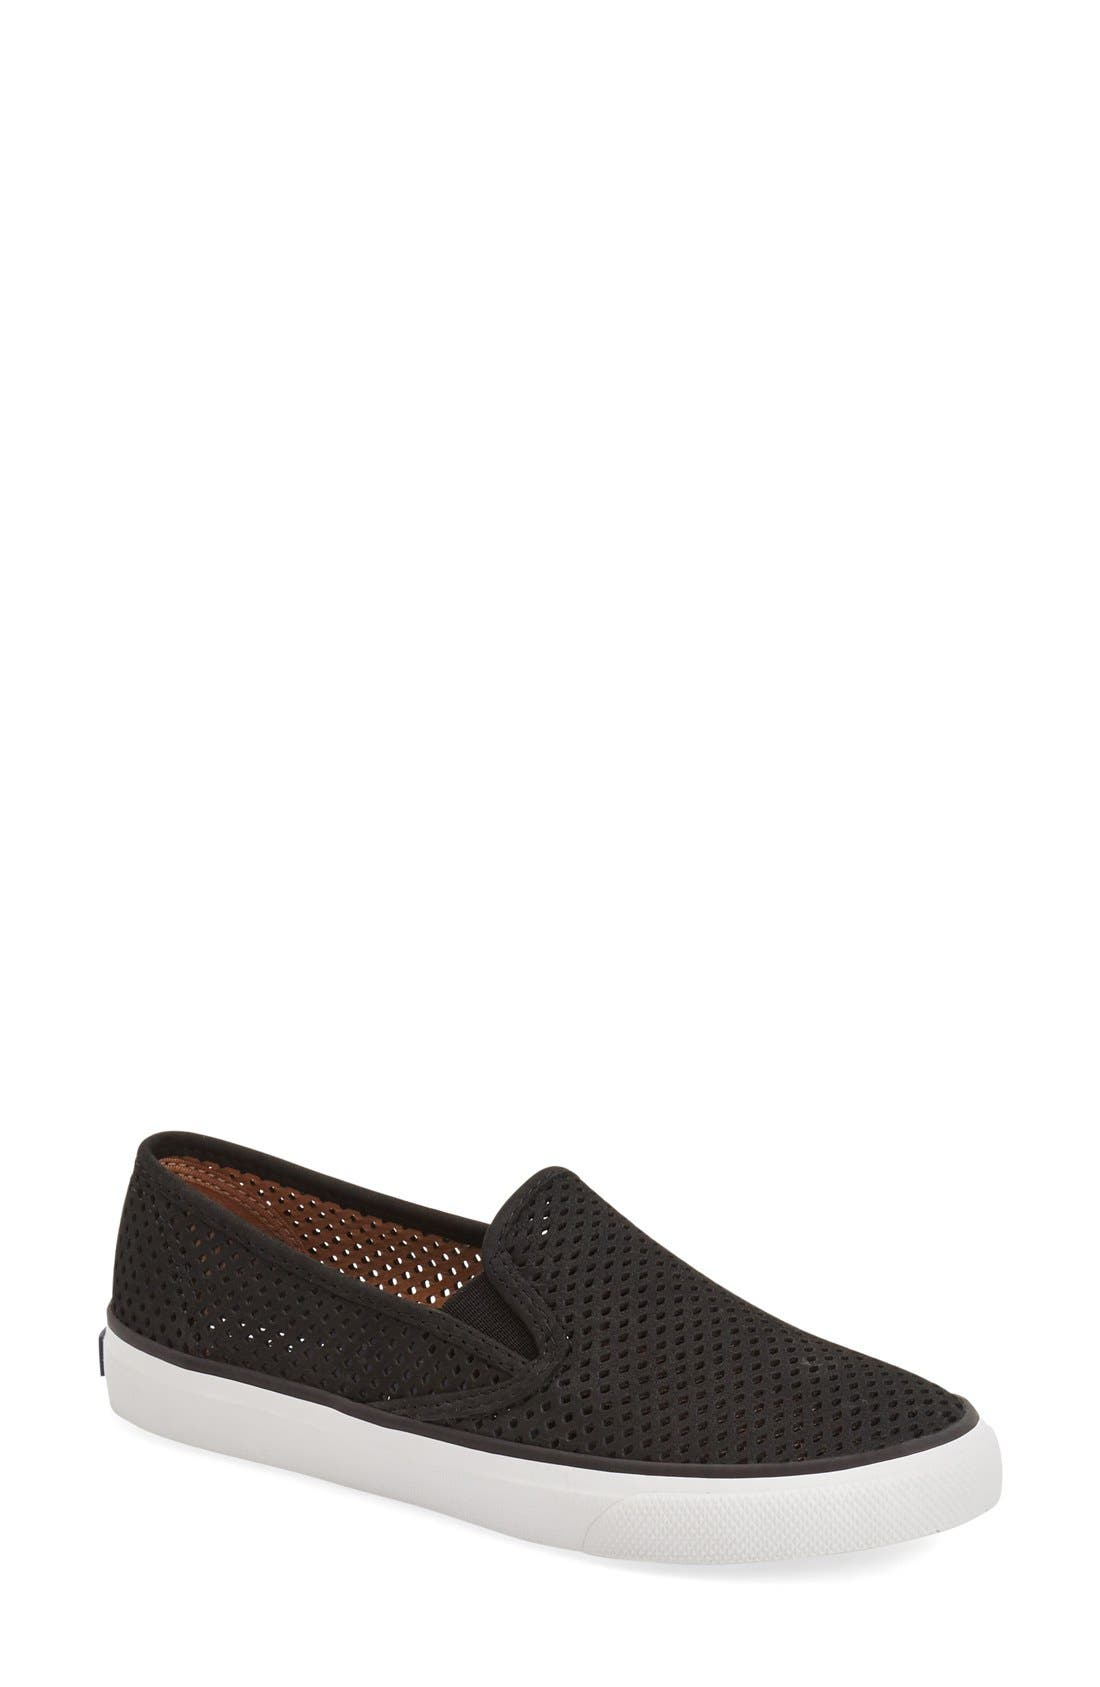 SPERRY 'Seaside' Perforated Slip-On Sneaker